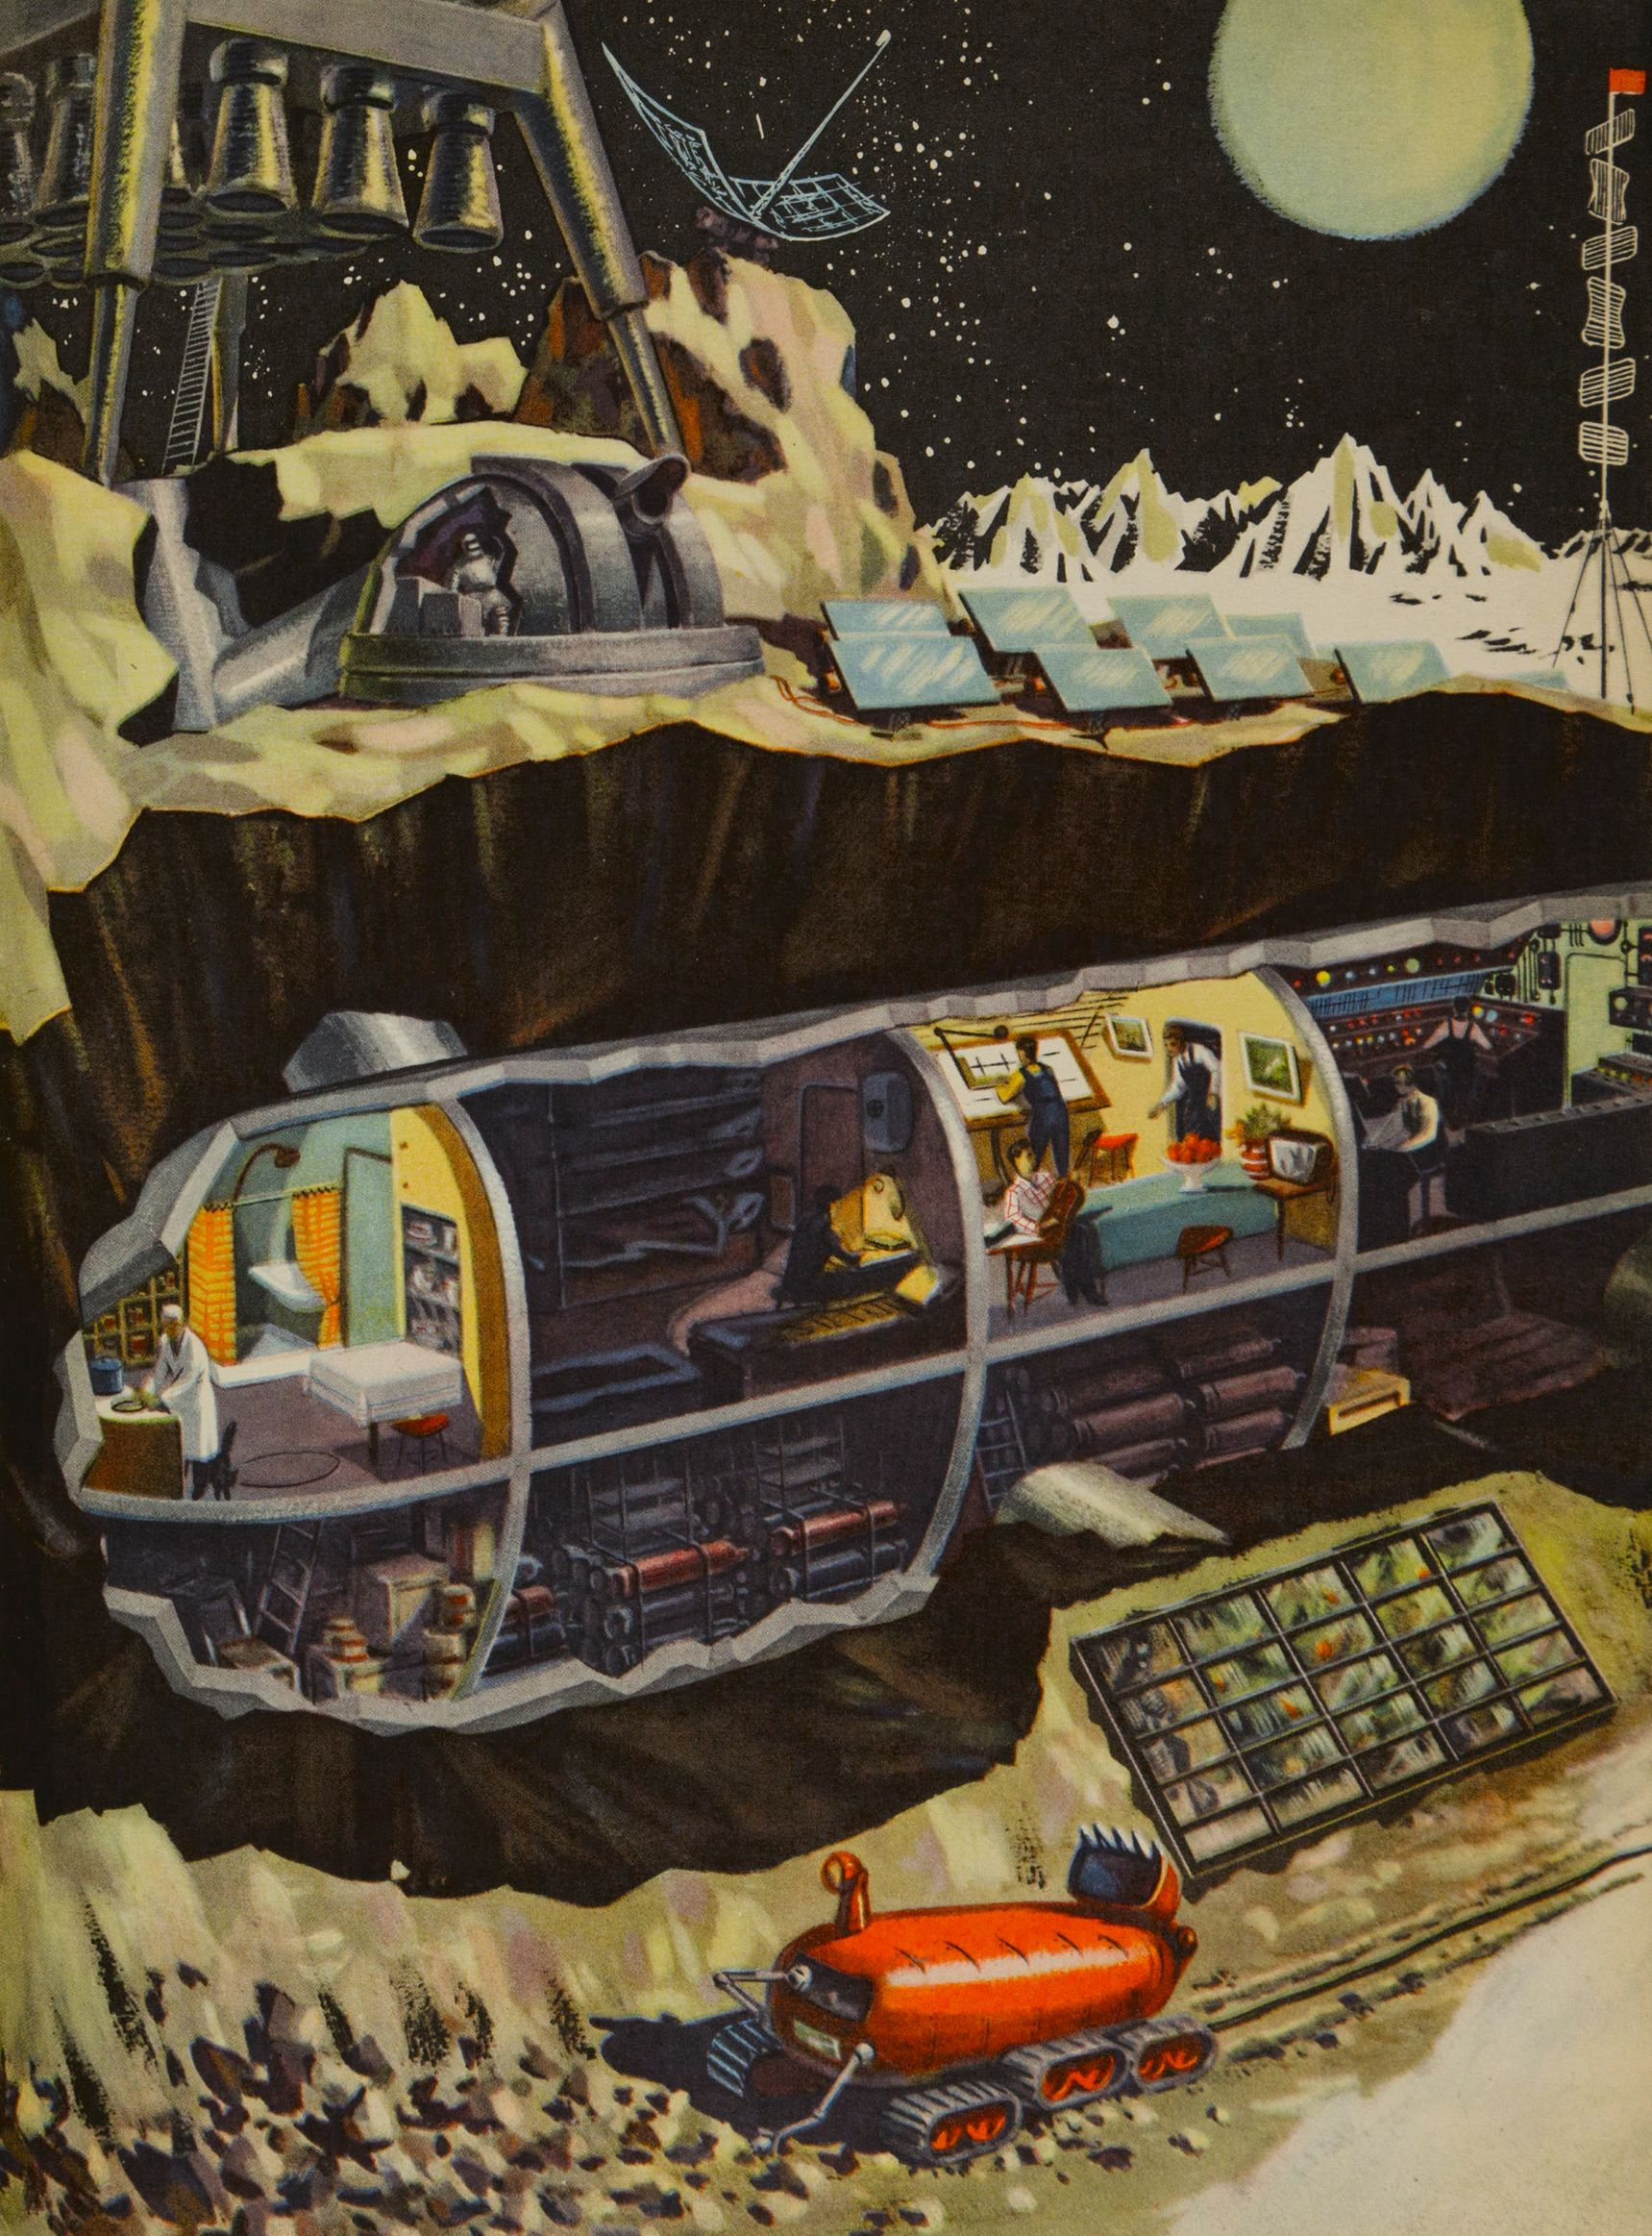 Technology for the Youth, issue 2, 1959, illustration by B. Dashkov for the article 'What Would a Space Station on the Moon Look Like?'